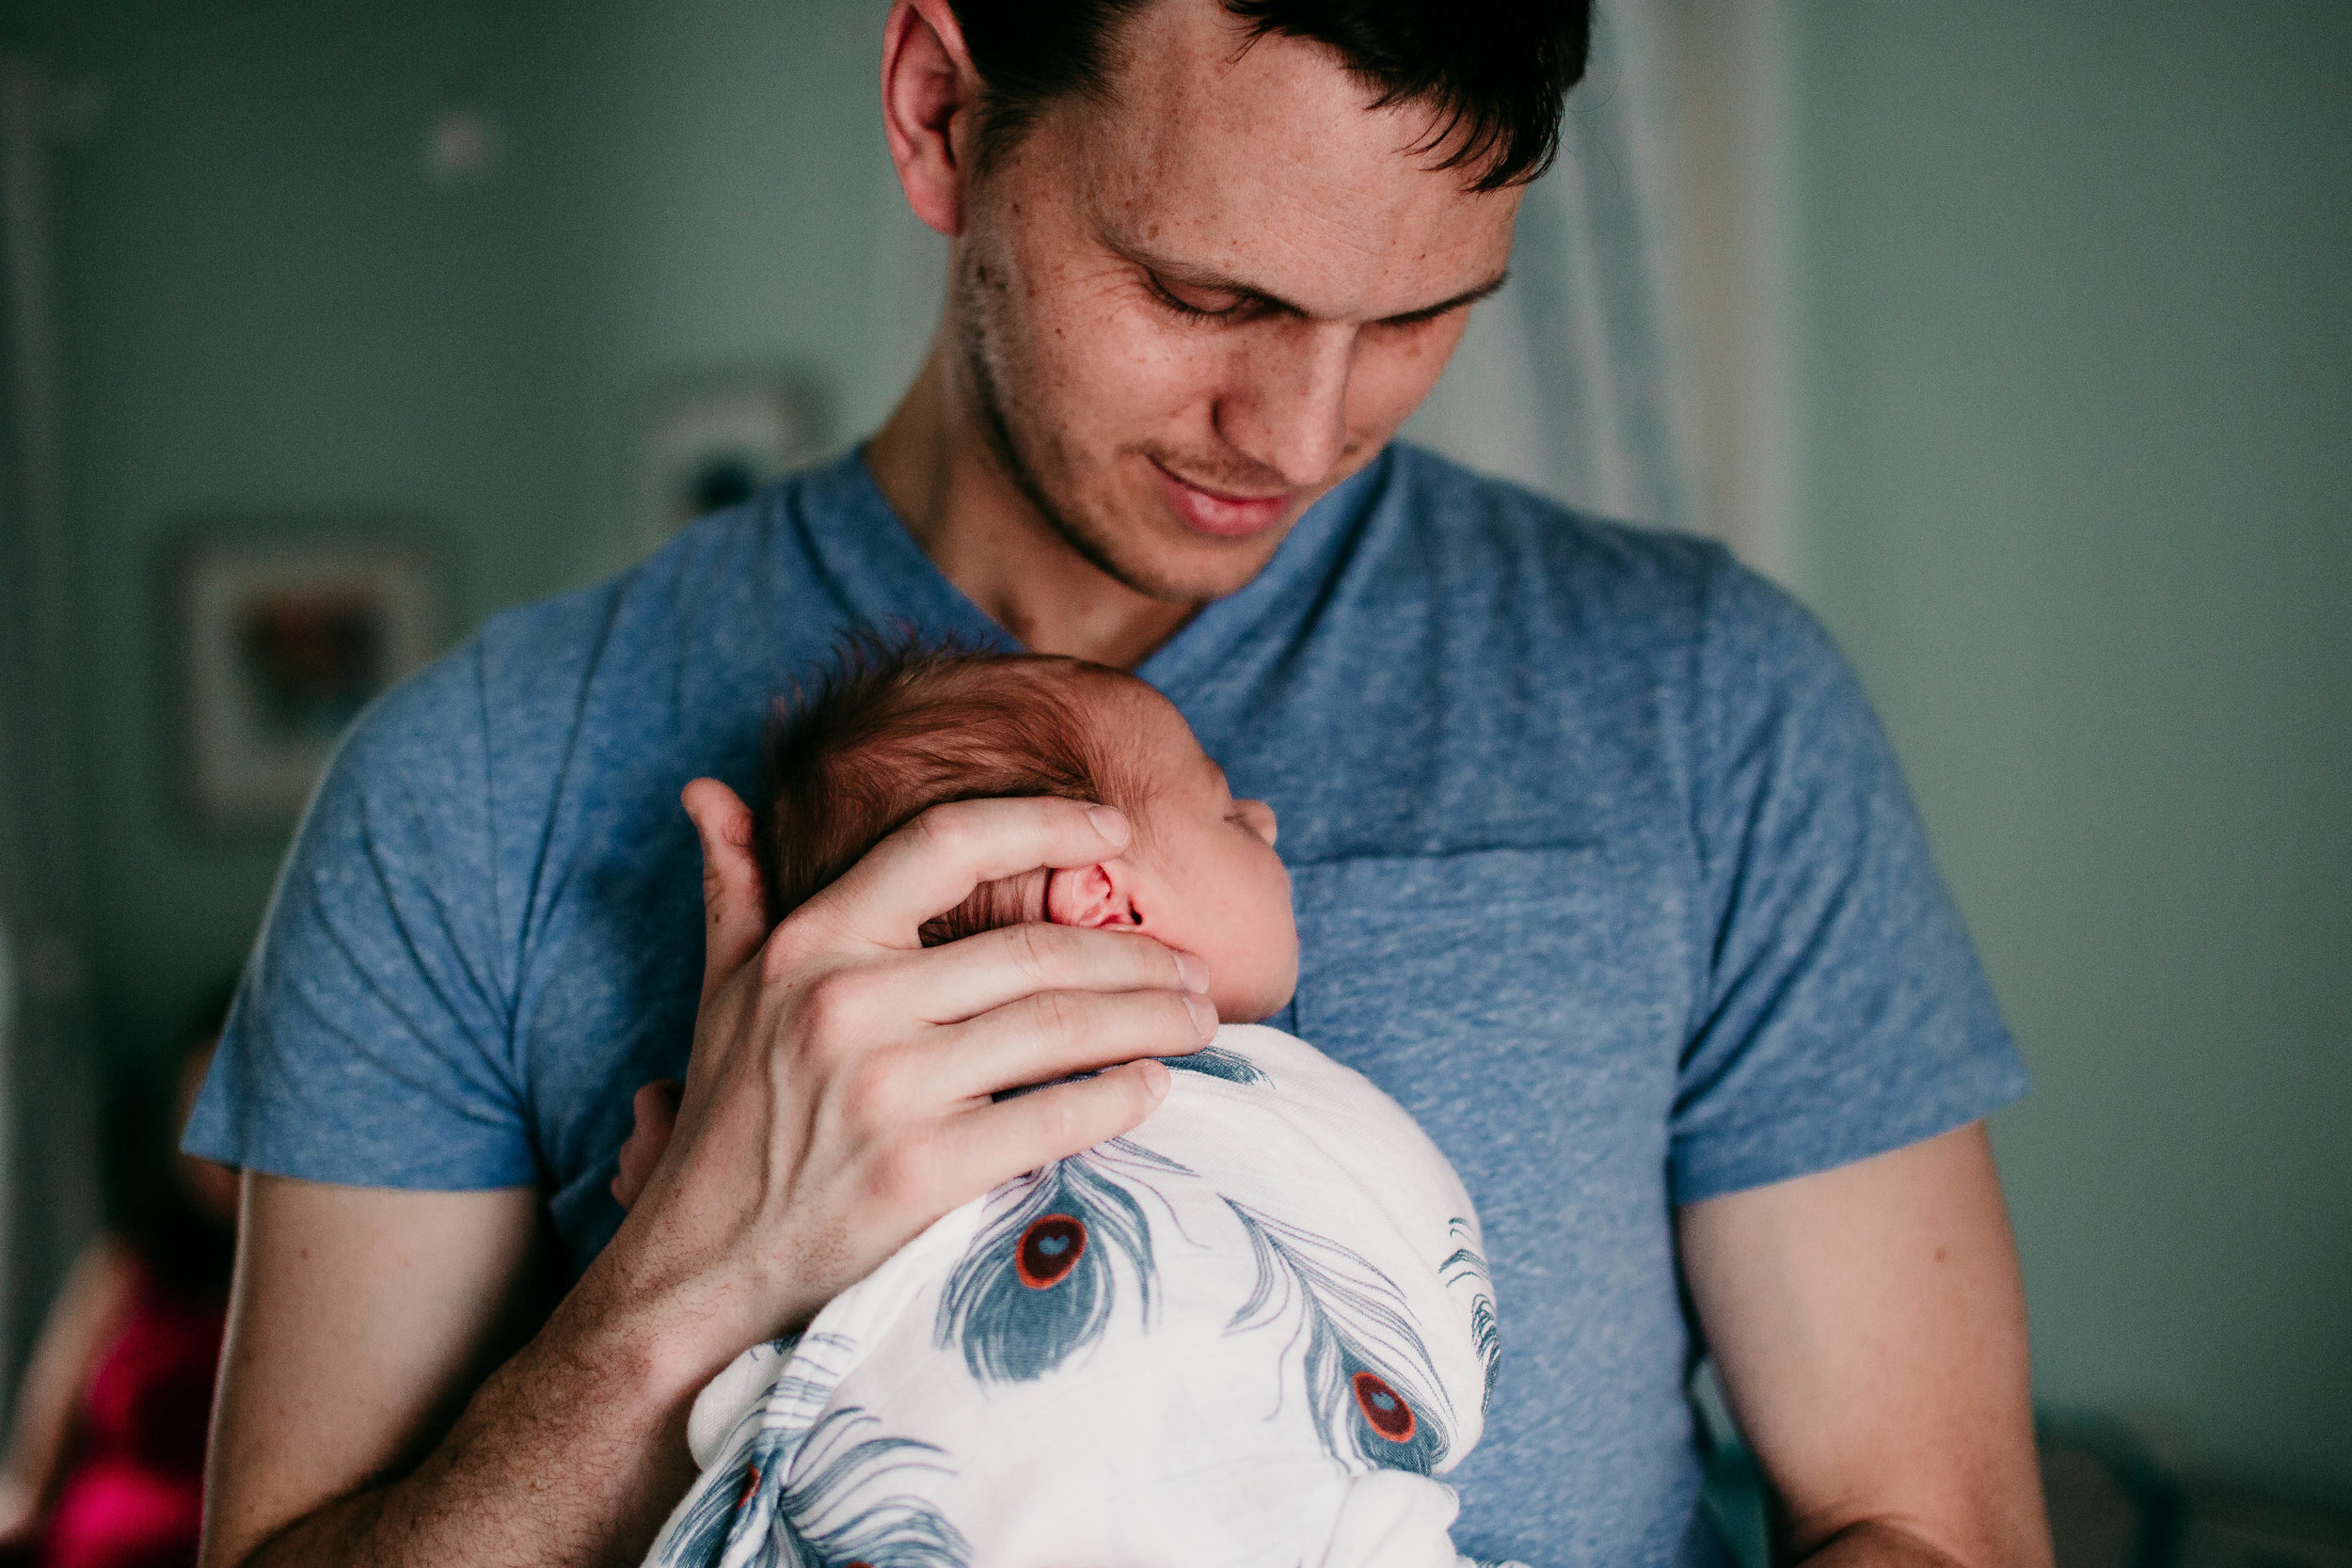 Father and son photo, becoming a father | Paul O Lifestyle Newborn Session | Hannahill Photogrraphy | Kansas City, MO | Family photography in home